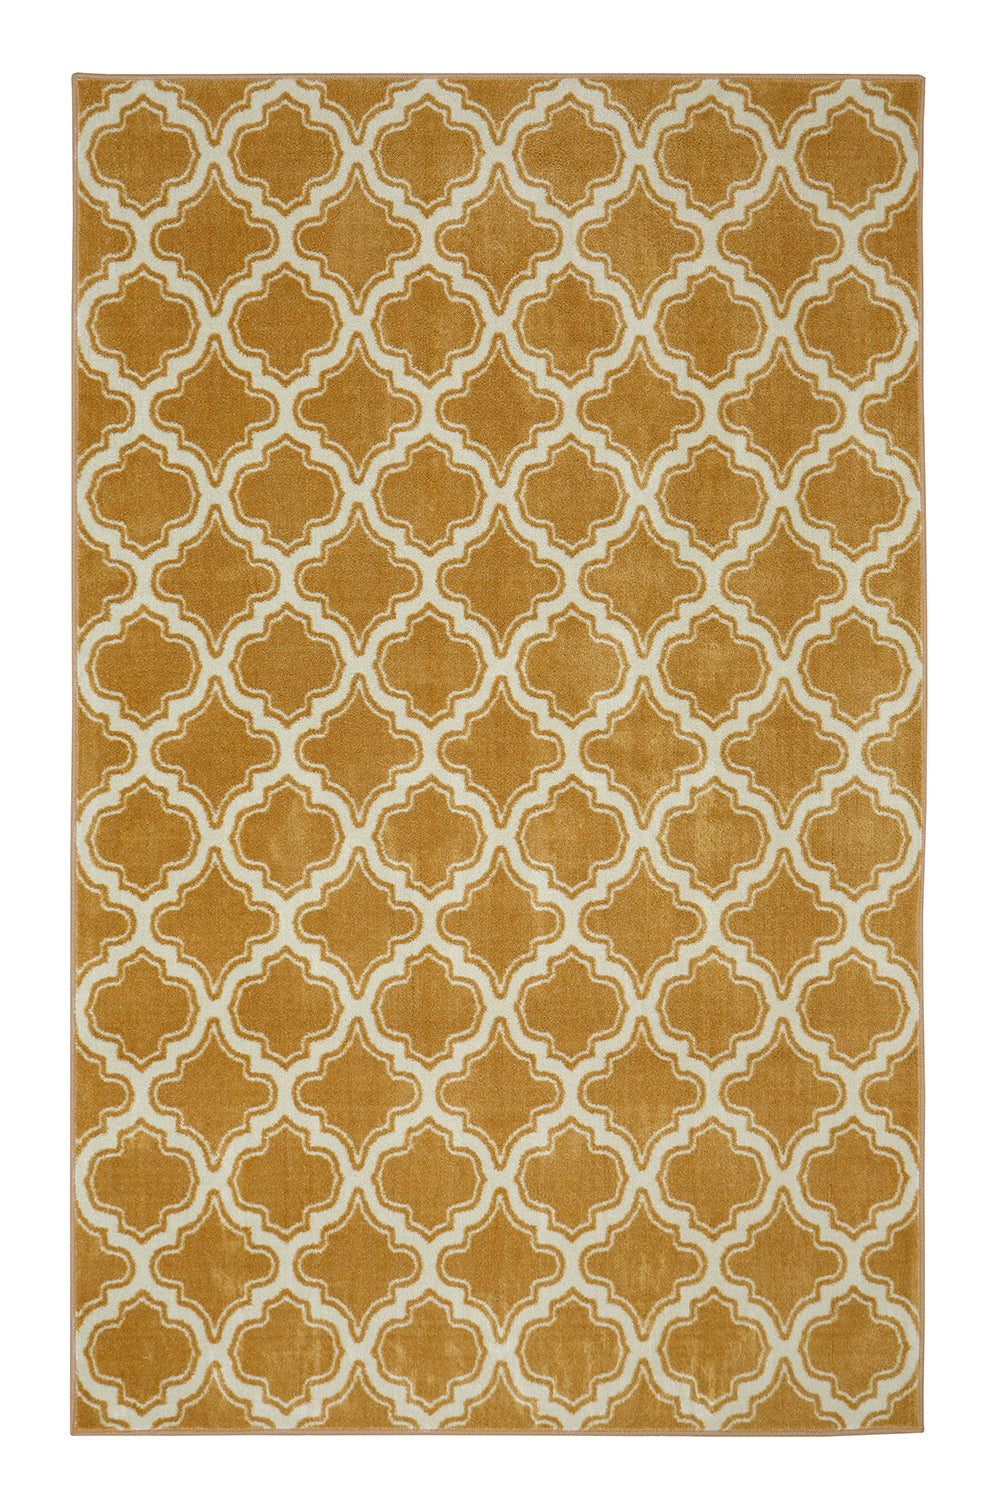 Mohawk Home Aurora Calabasas Uno Warm Area Rug ? Incredible Rugs and Decor